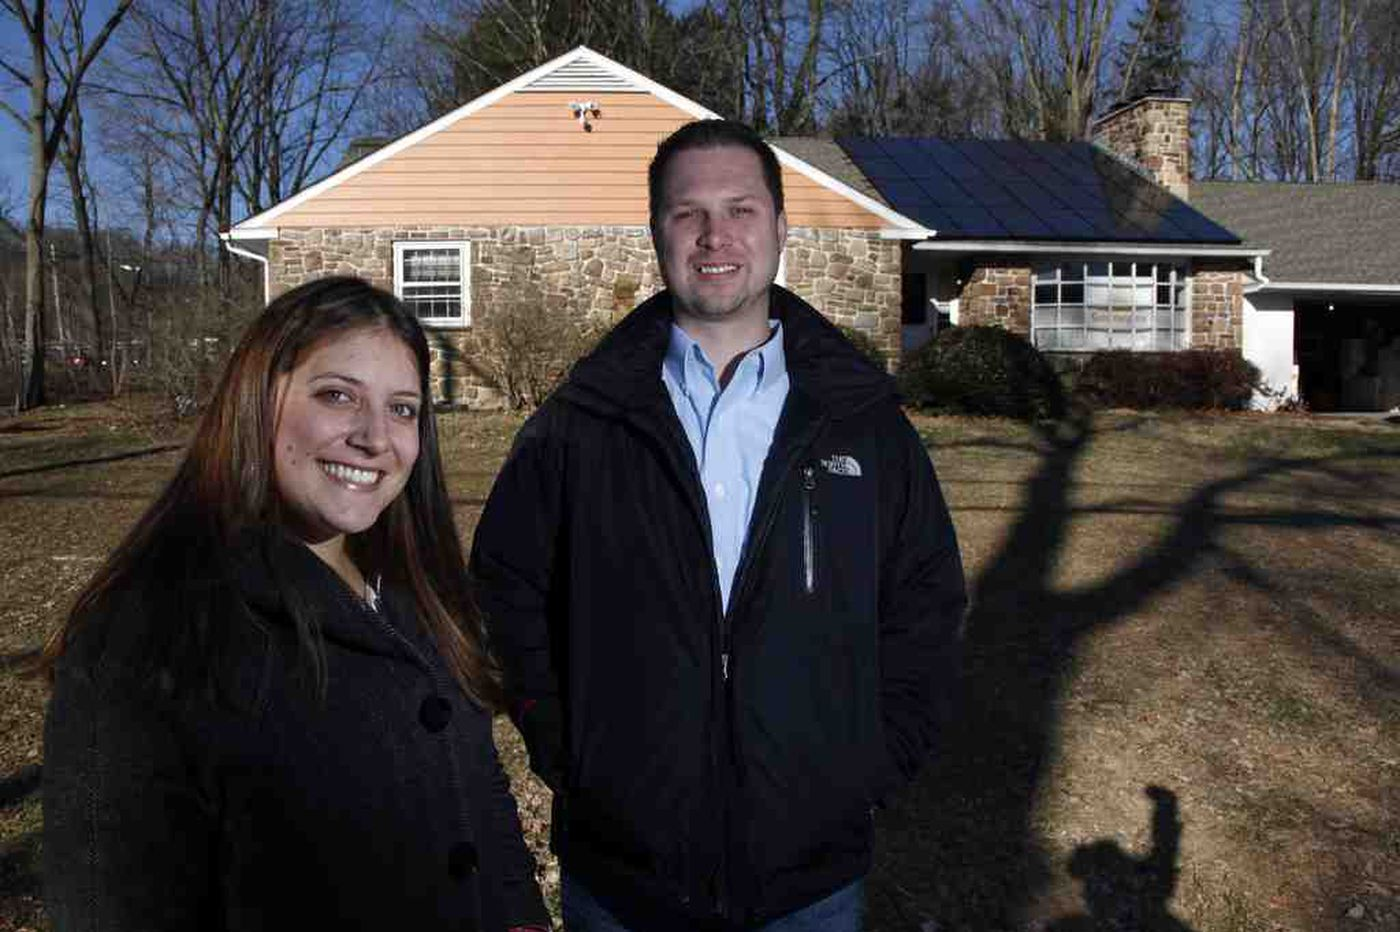 Encouraging a child who left the family solar business in Collegeville